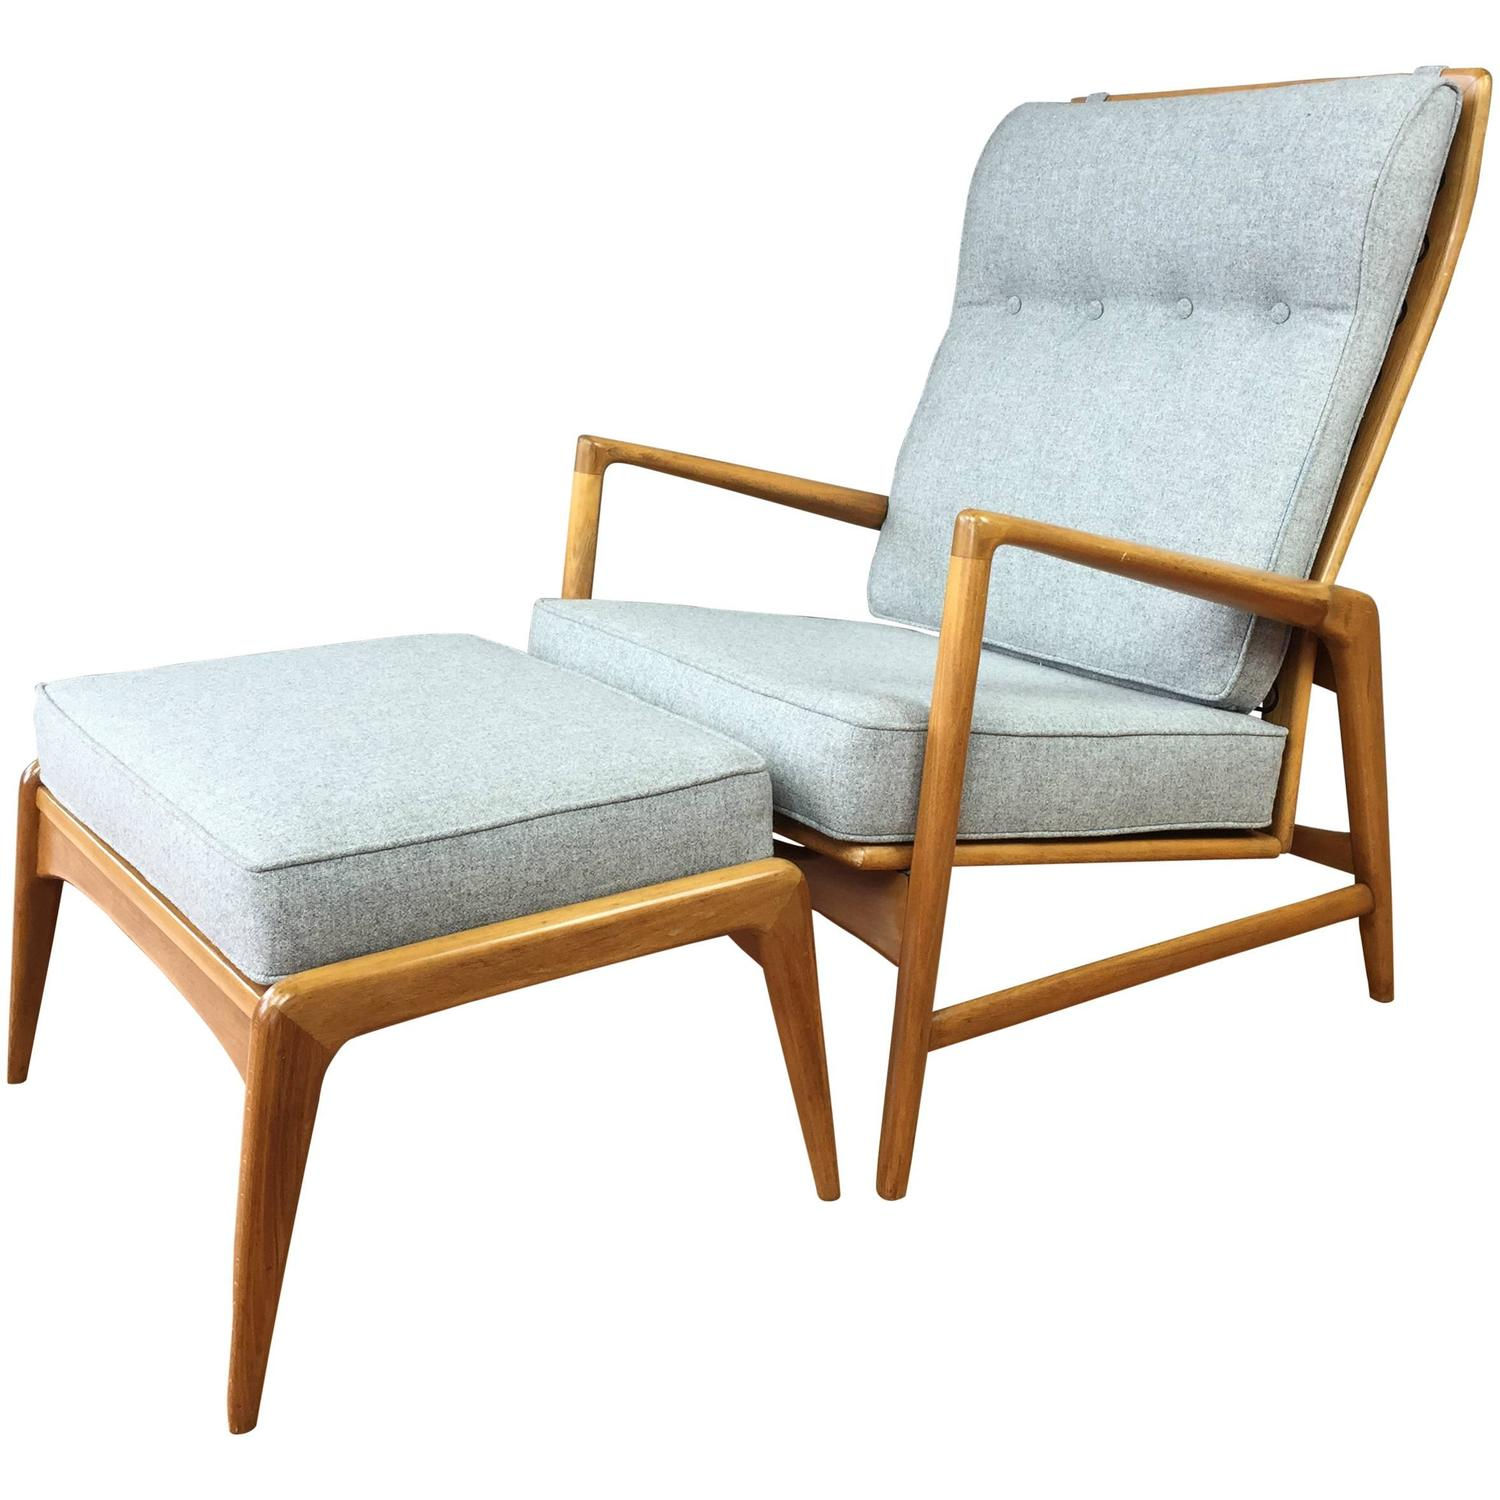 This sculptural pair of lounge chairs by ib kofod larsen is no longer - Ib Kofod Larsen Reclining Lounge Chair And Ottoman For Selig At 1stdibs